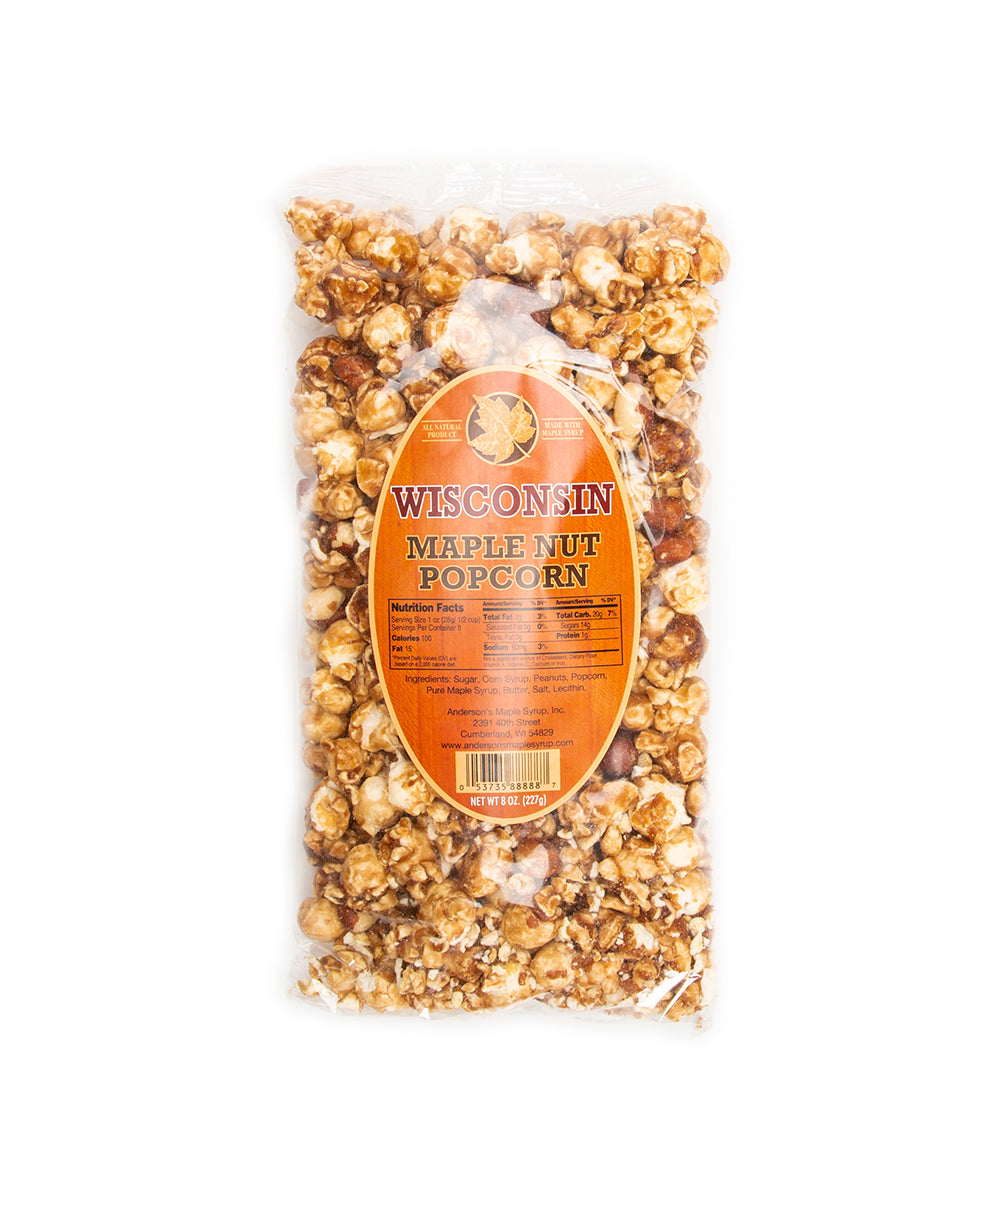 ANDERSON'S MAPLE NUT POPCORN